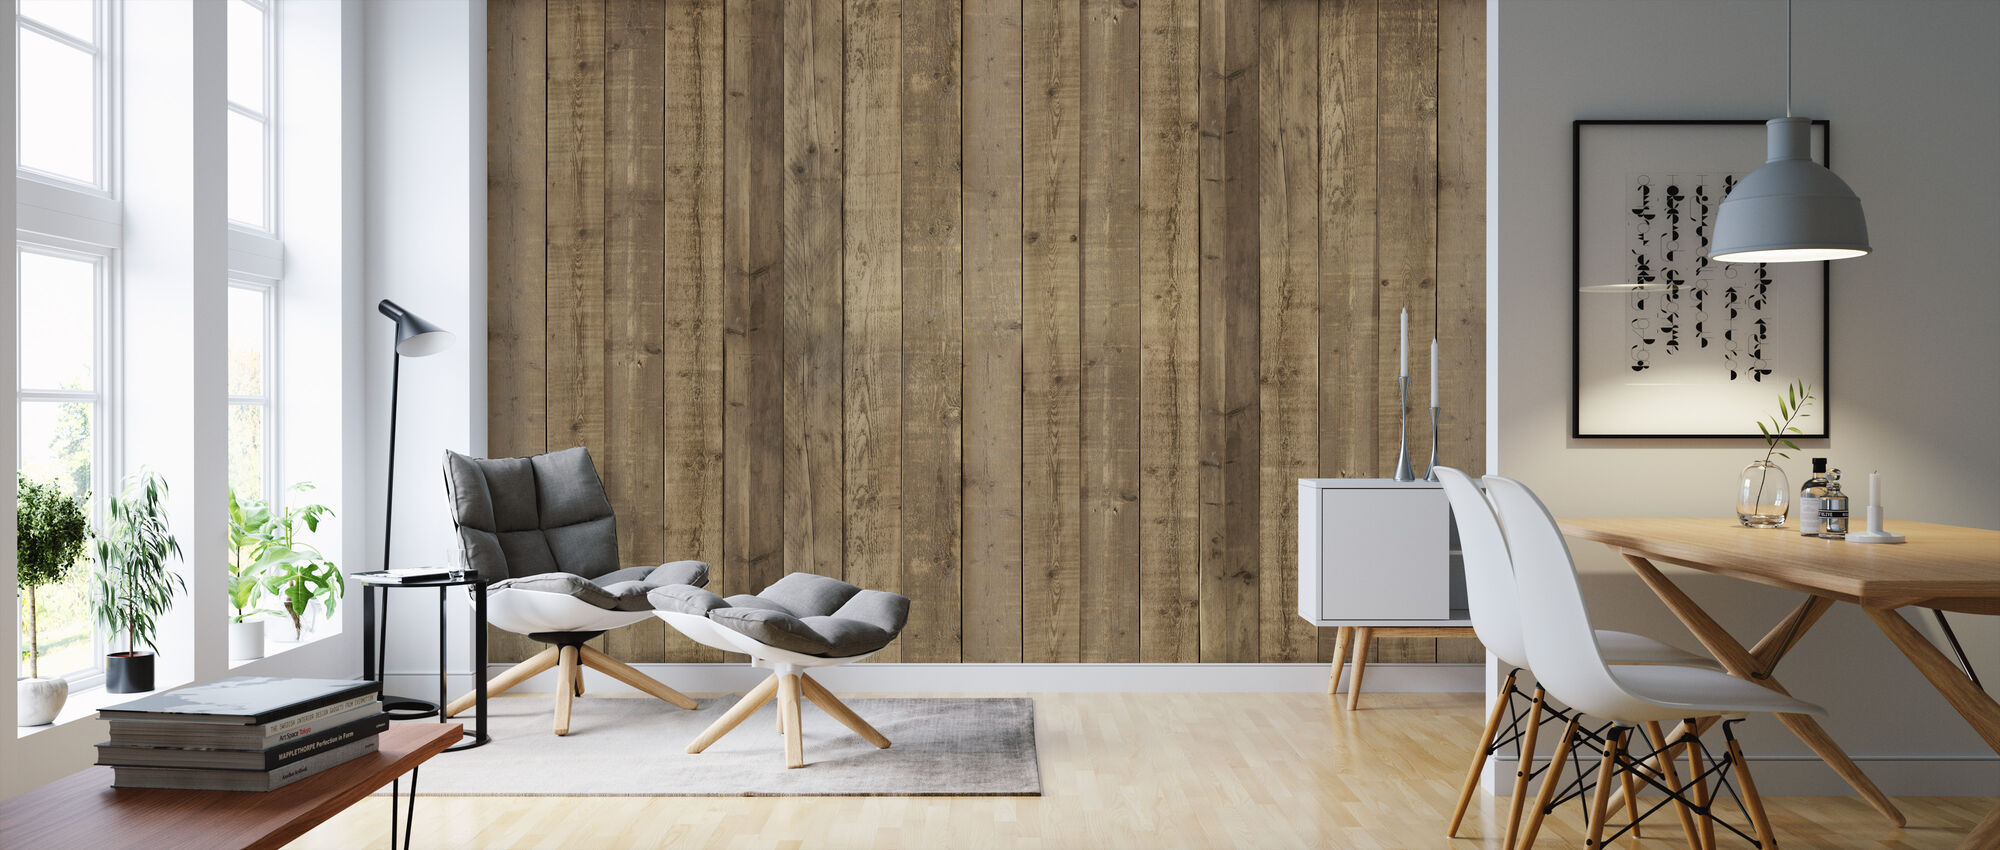 Plank Wall - Wallpaper - Living Room